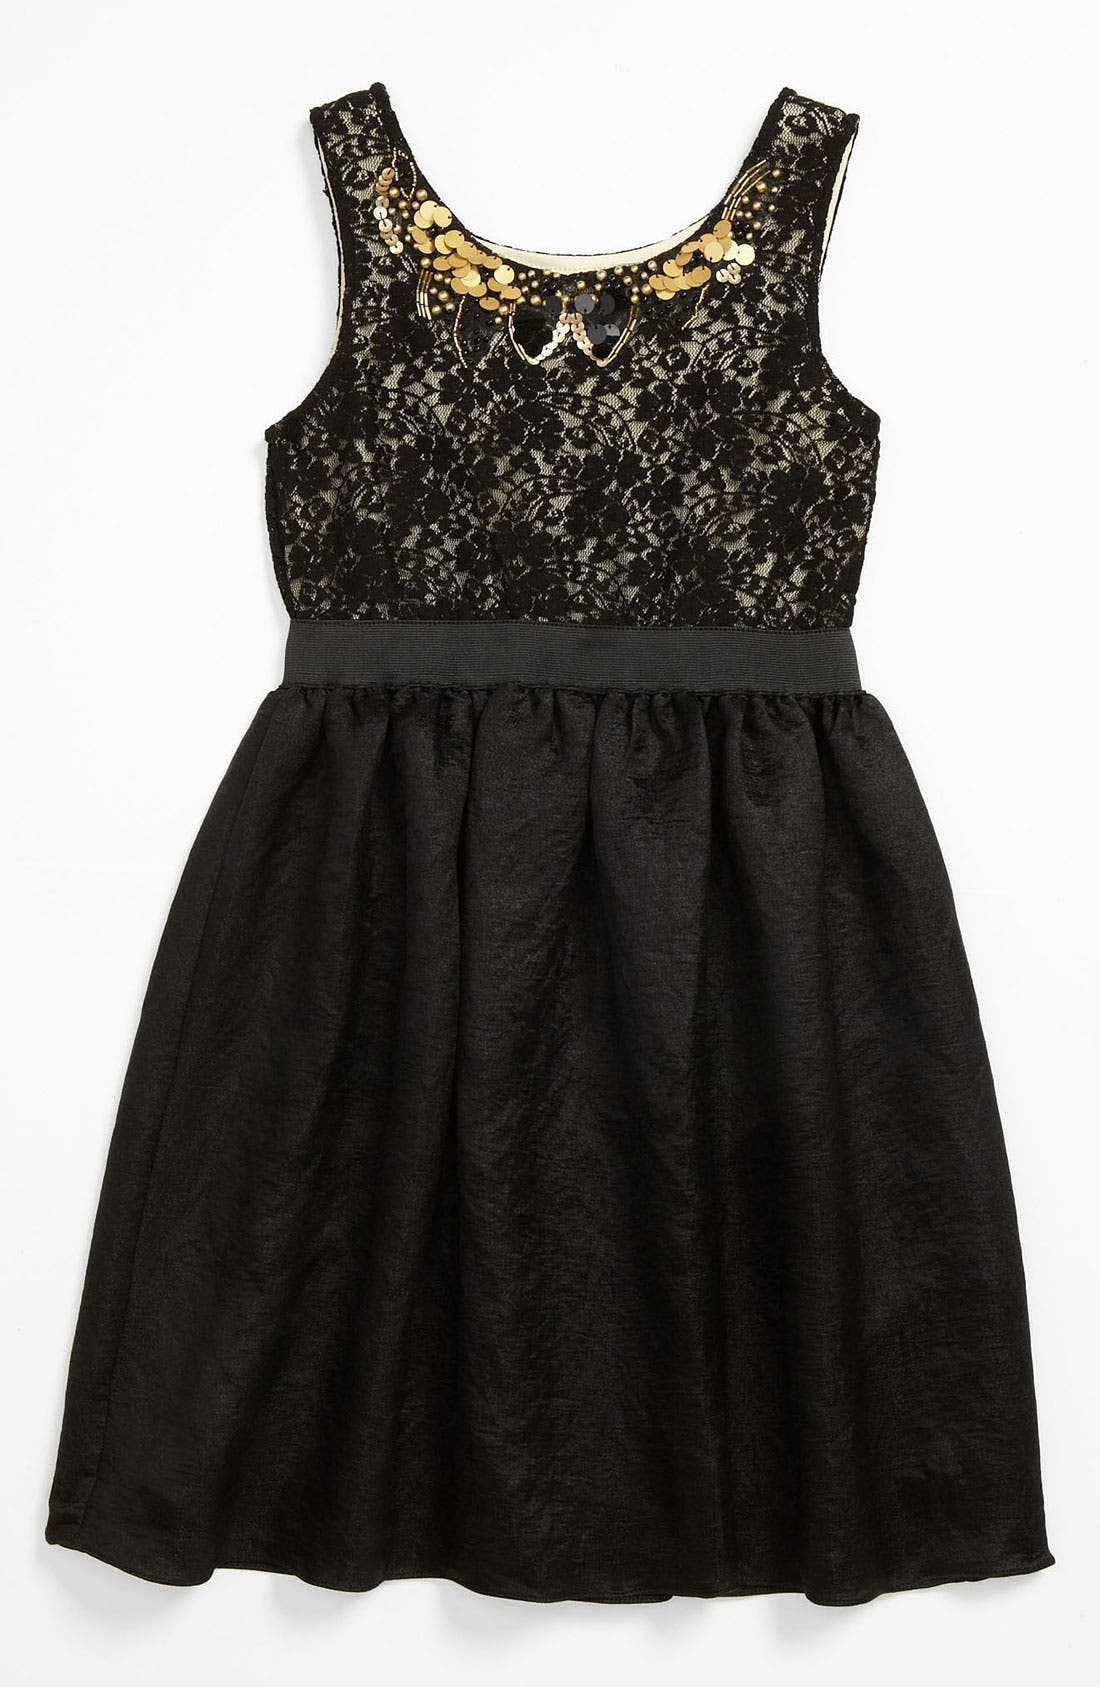 Alternate Image 1 Selected - BLUSH by Us Angels Lace Dress (Big Girls)